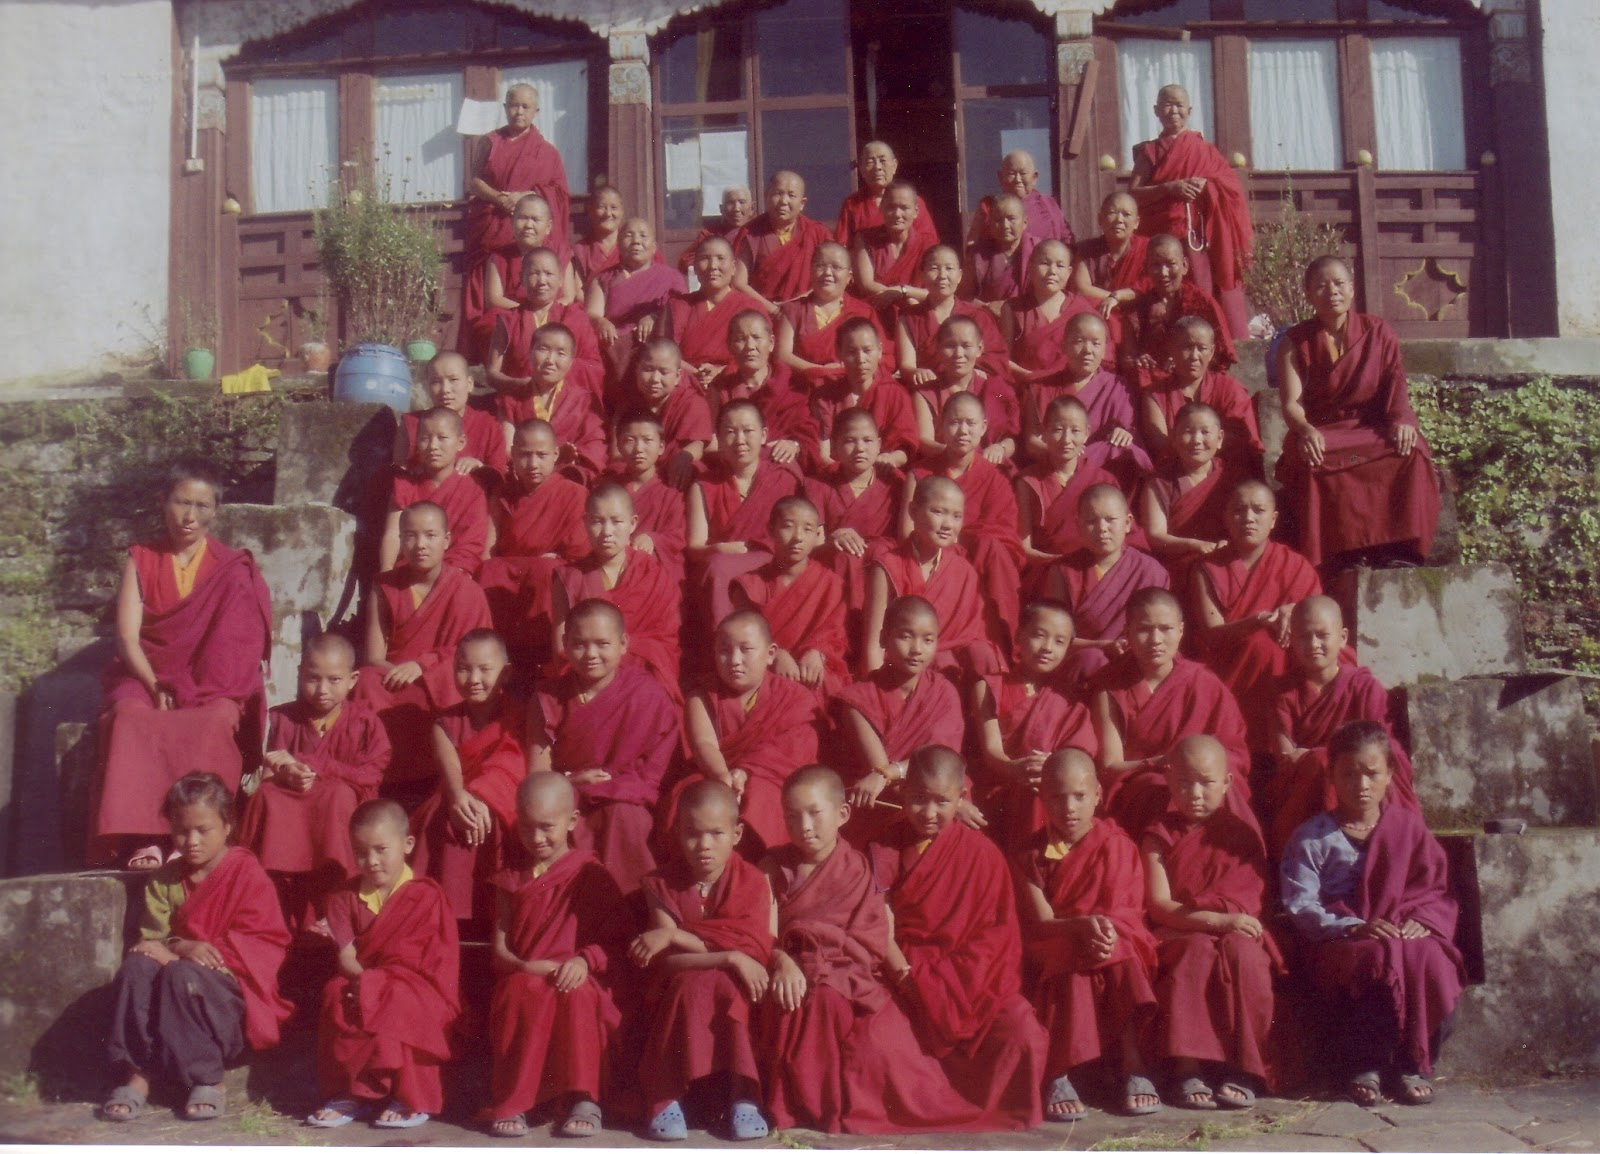 Bigu Nunnery - every year Rinpoche sponors them in 100 million mani retreats